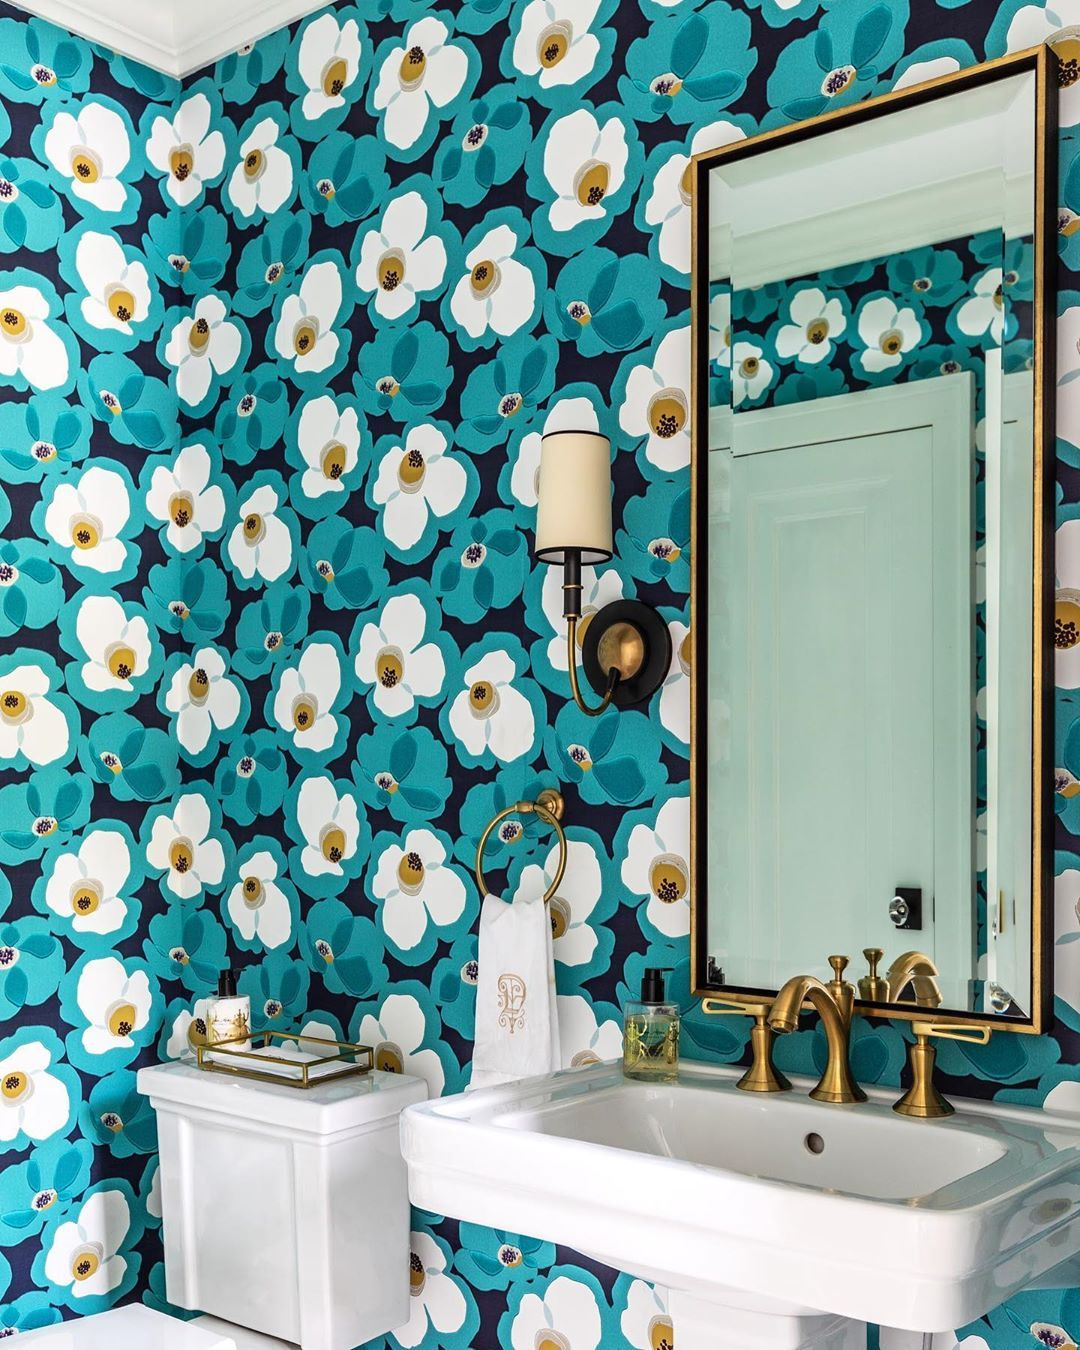 Jacksonville Magazine On Instagram Off The Walls I Love Wallpaper And How It Can Transform A Space I Often He Love Wallpaper Said Wallpaper Off The Wall